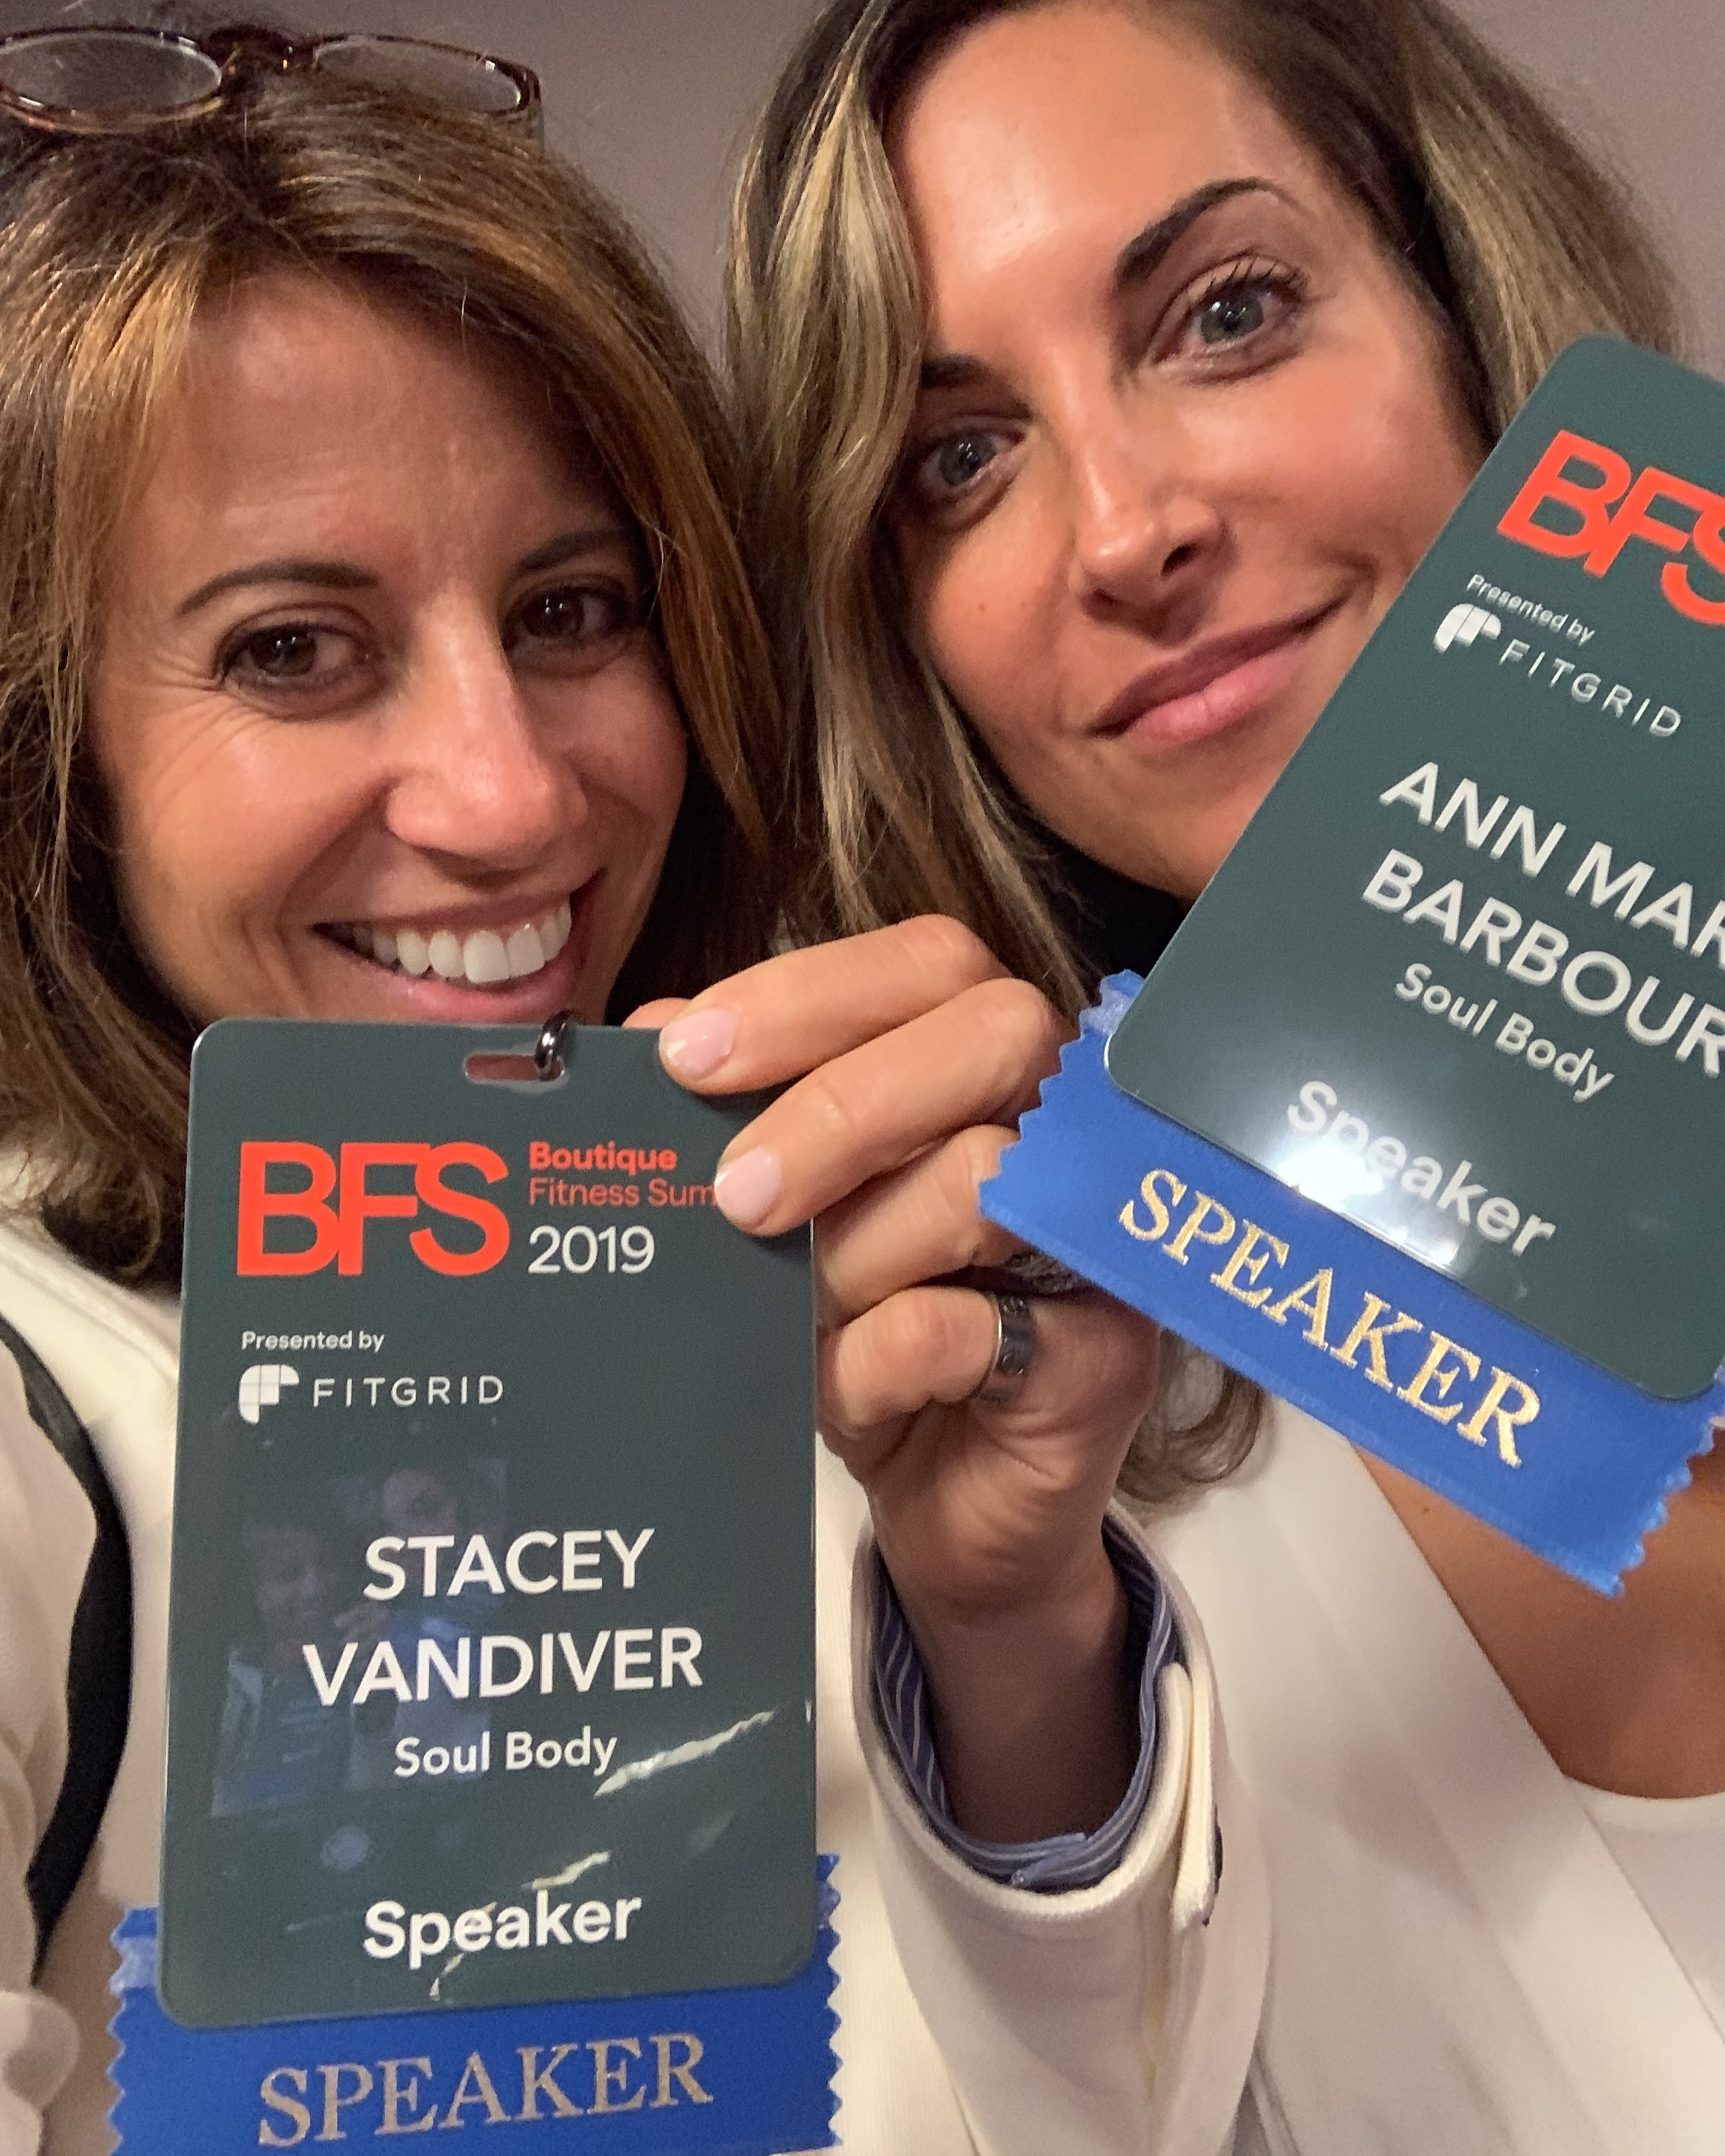 Pitch Perfect - Co-Founders Stacey Vandiver & Ann Marie Barbour pitching to Investors at BFS Ventures!